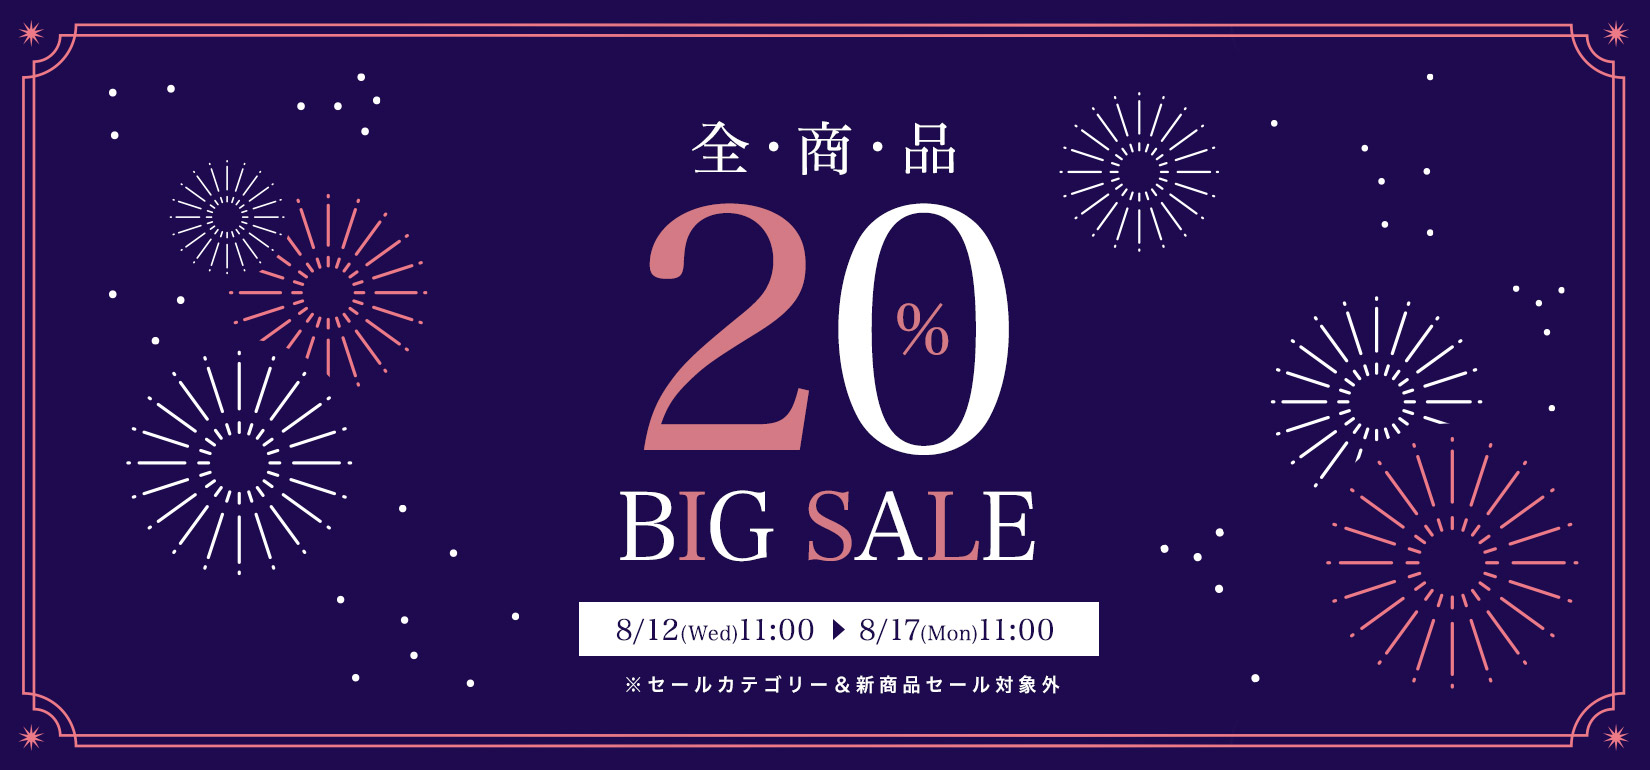 BIG SALE 20% OFF